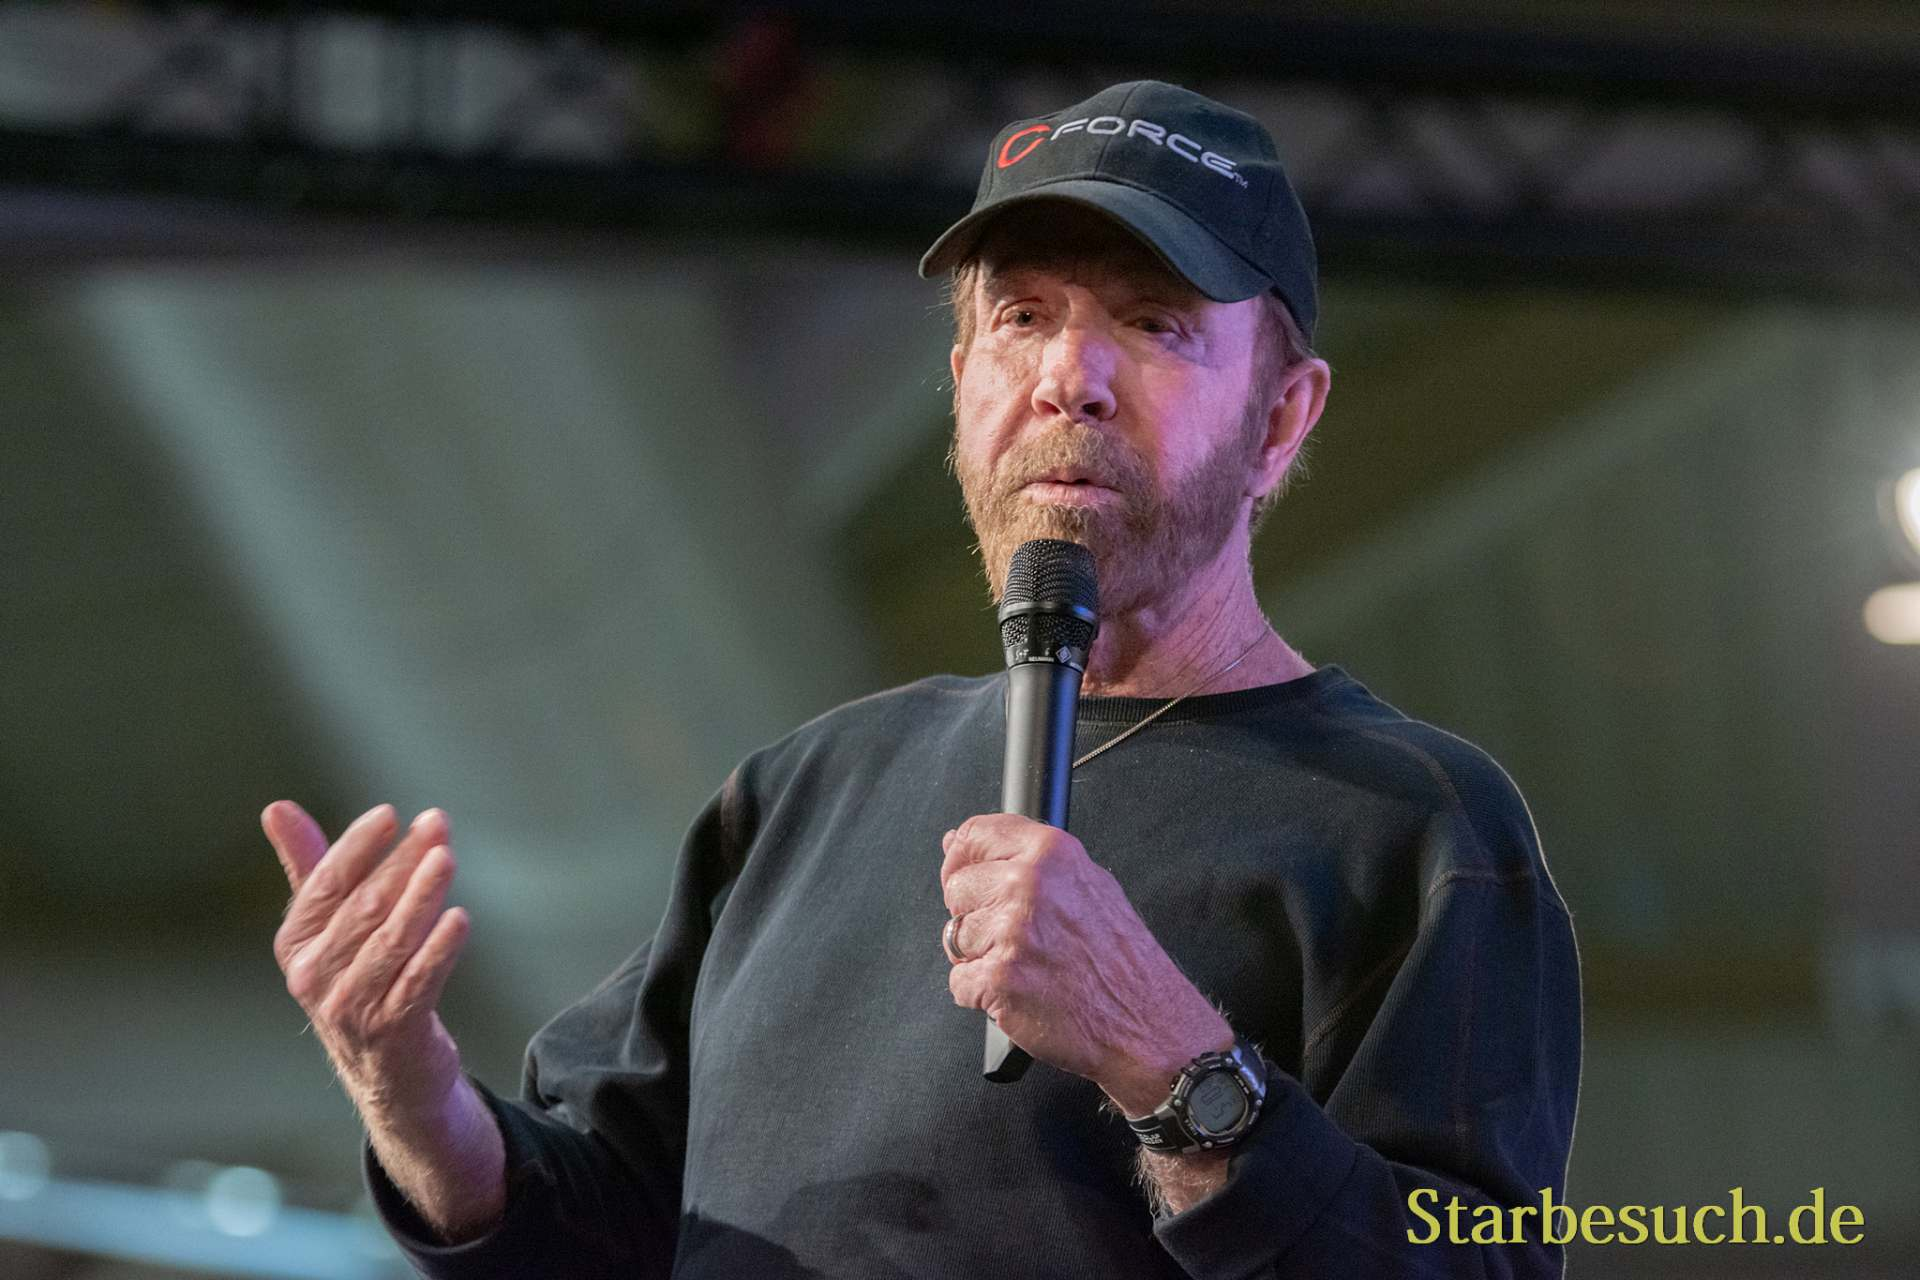 DORTMUND, GERMANY - December 1st 2018: Chuck Norris (*1940, American martial artist, actor, film producer and screenwriter) at German Comic Con Dortmund, a two day fan convention